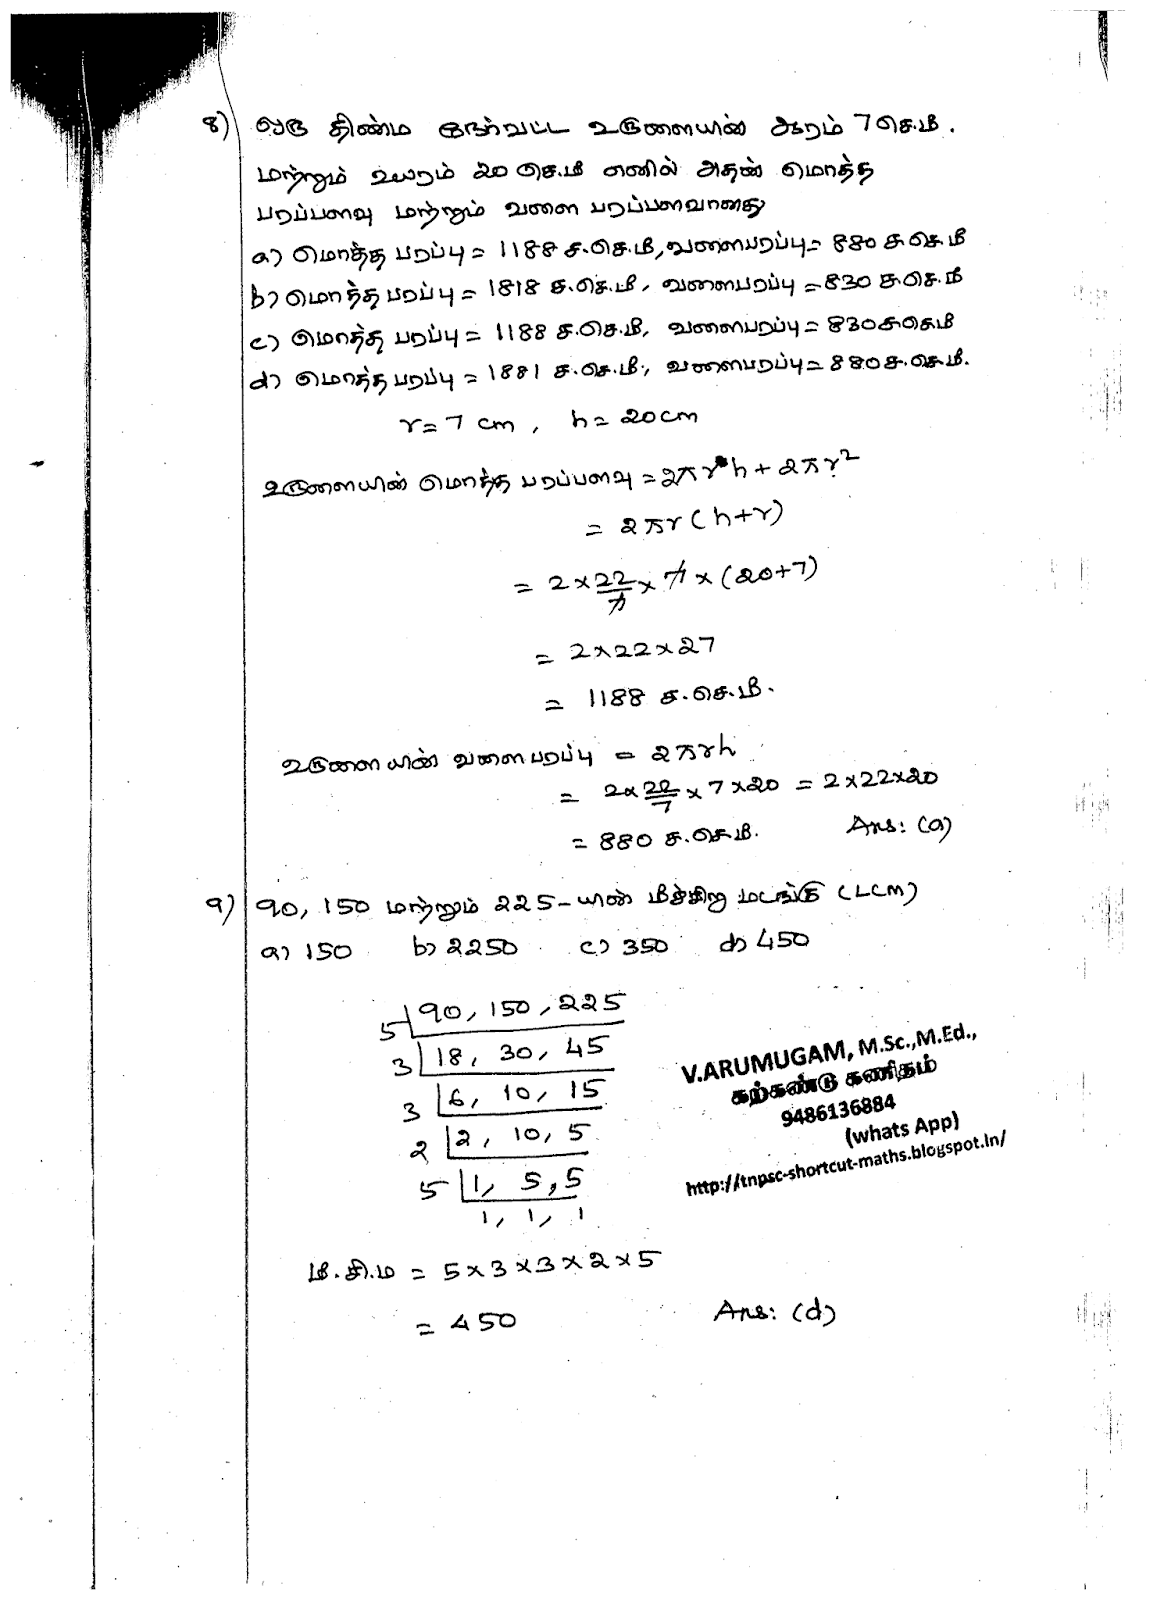 TNPSC – 2019 - Posts of Assistant Superintendents, Assistant Geologist in Department of Geology in the Tamil Nadu Geology and Mining Subordinate Service & Assistant Geochemist, Posts of Chemist and Junior Chemist, Accounts Officer, Class-III EXAM - EXAM DATE: 05.05.2019